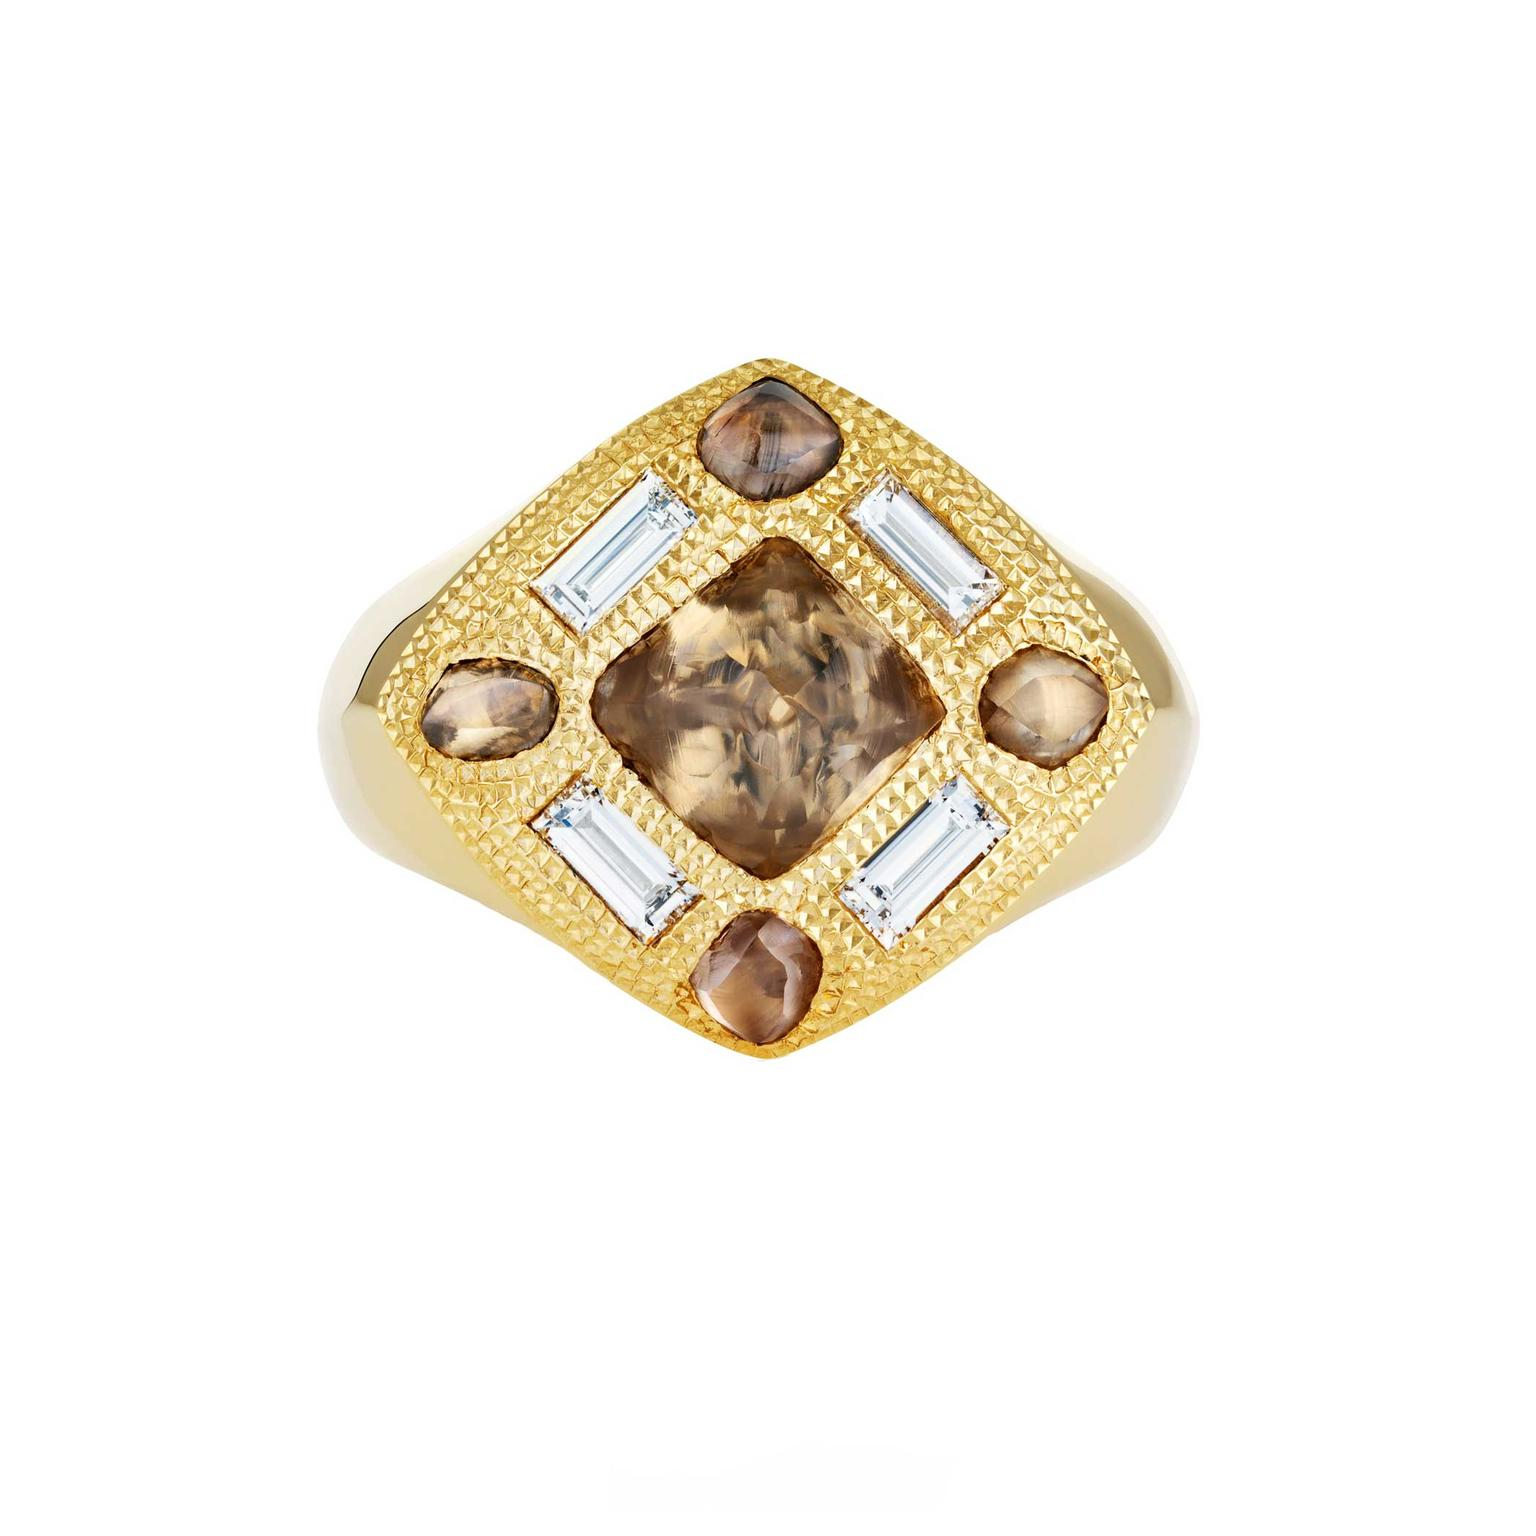 De Beers Talisman gold signet ring with rough diamonds